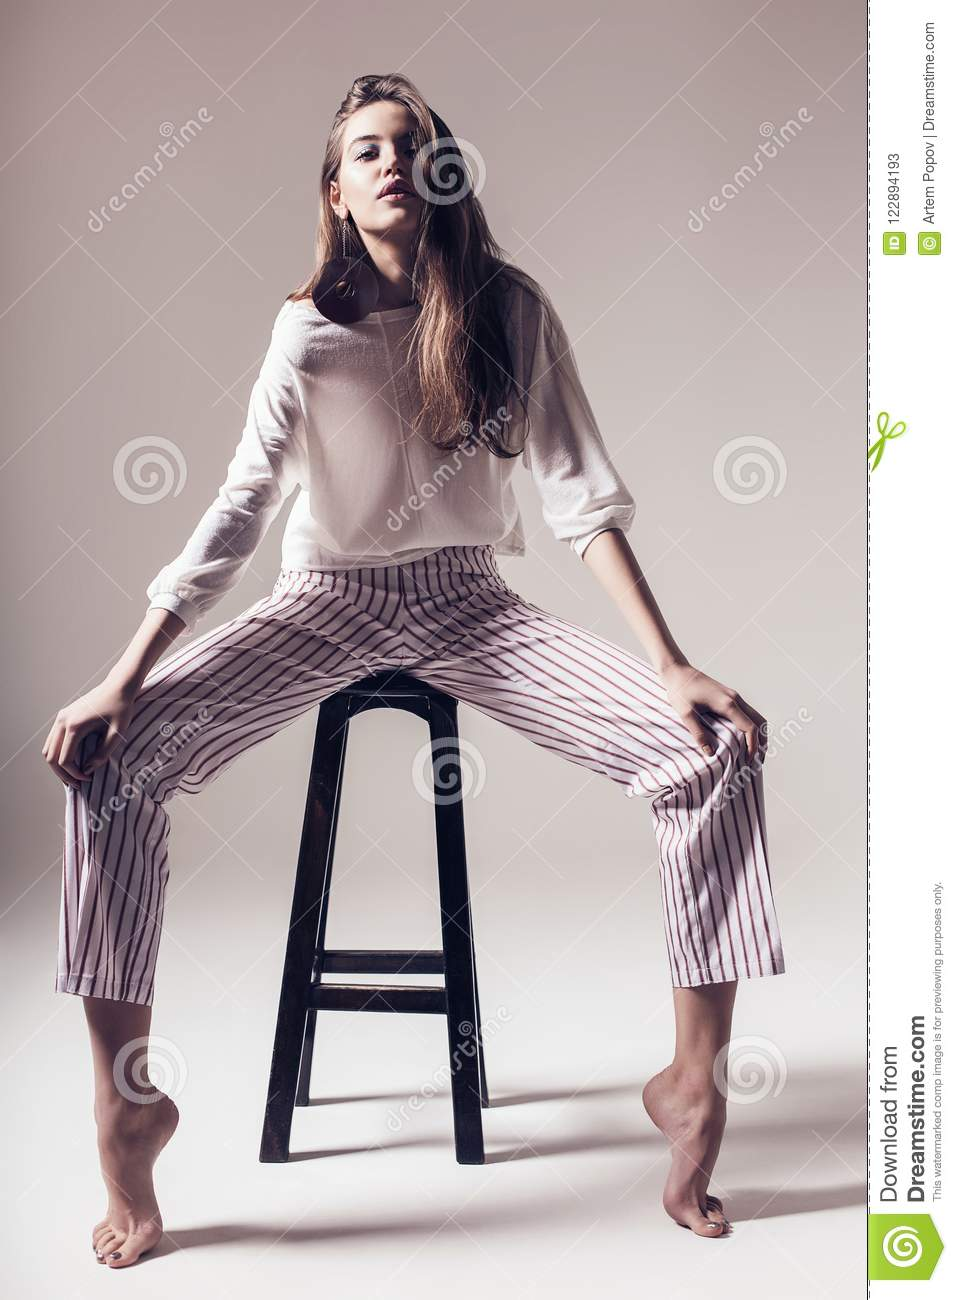 Chair Pants Contemporary Woman In Striped Pants Sitting On Chair Stock Image